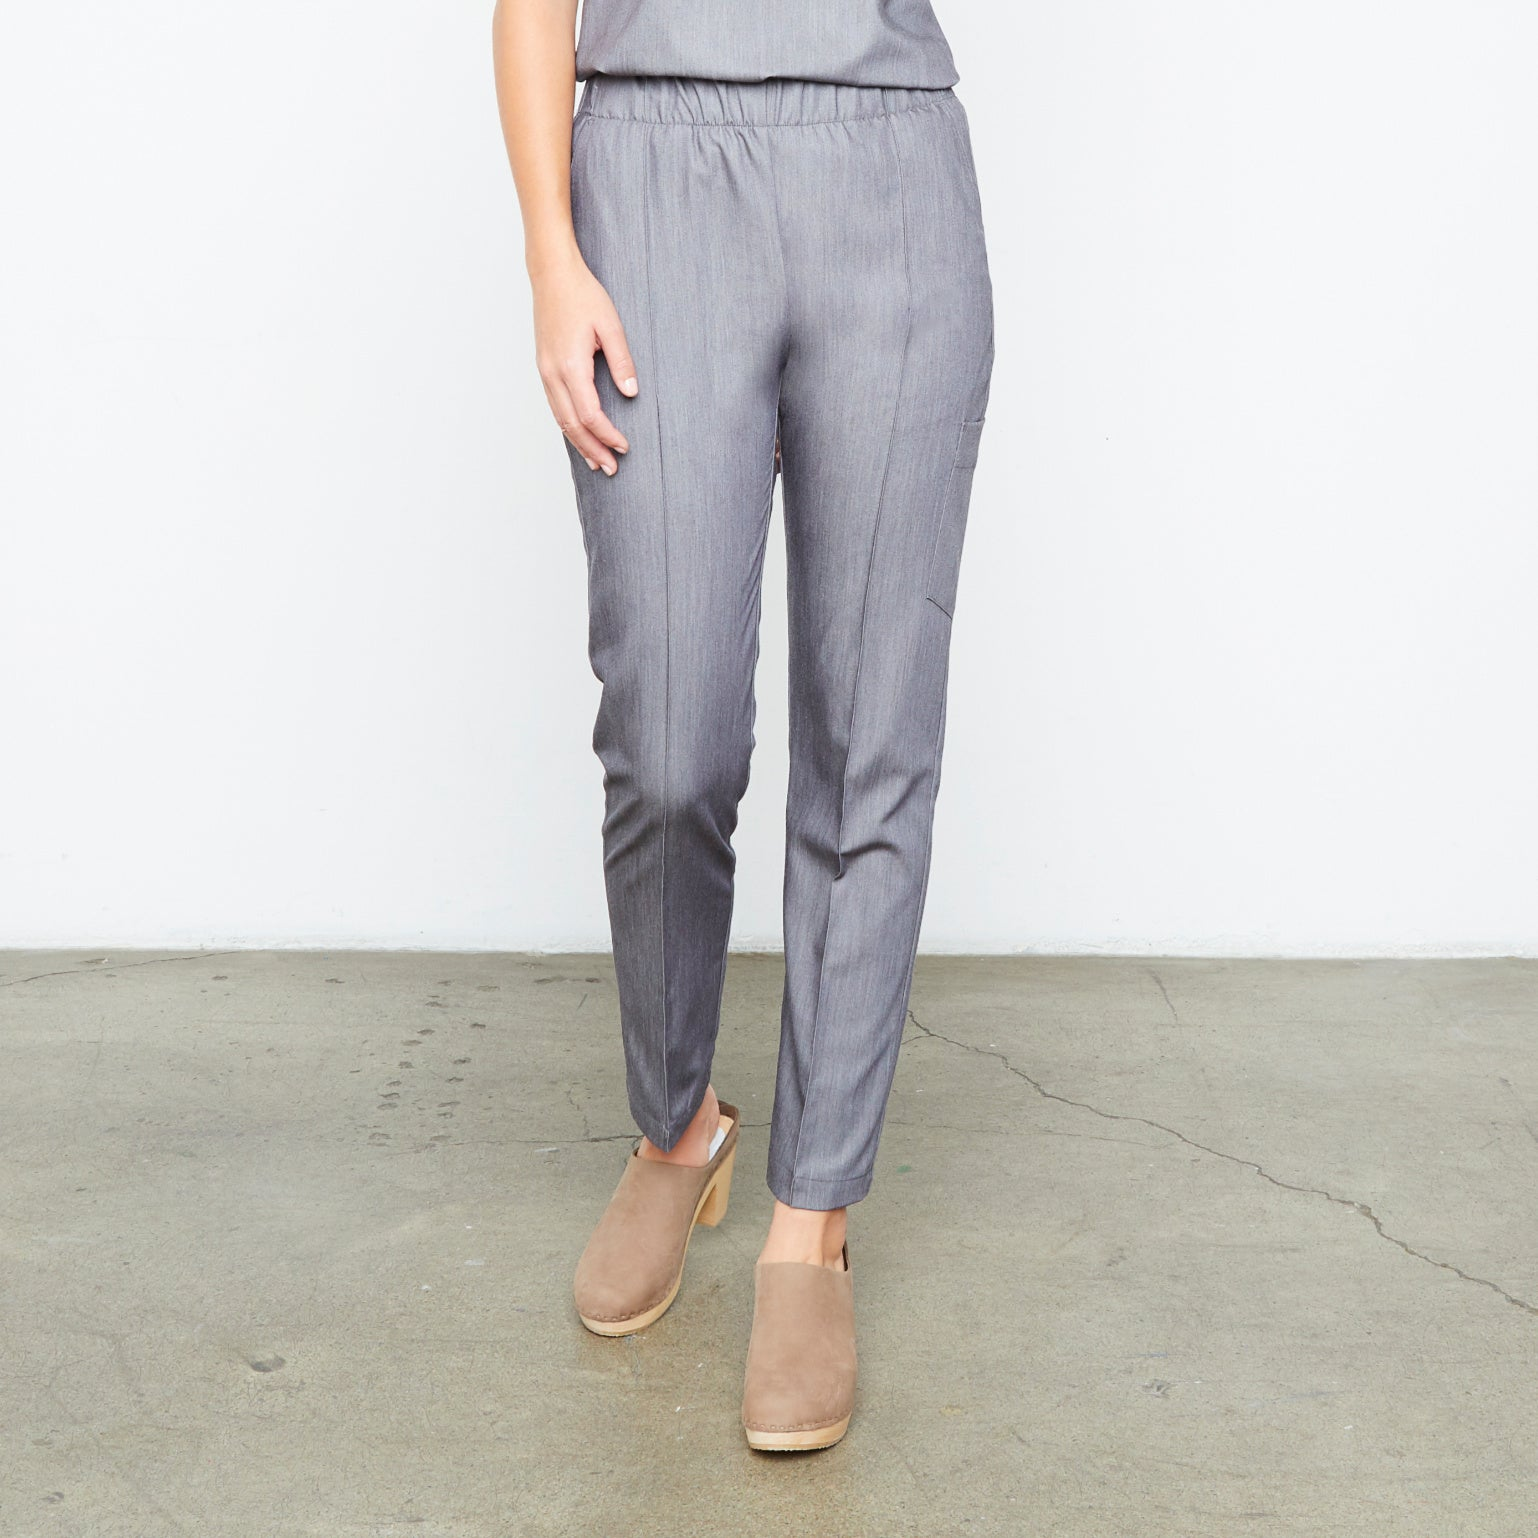 Harley Pant (Granite Smoothie) XXS | Fabled makes beautiful high quality scrub pants for women. Scrubs fashion for women doctors and female medical workers. Now in tall inseam!